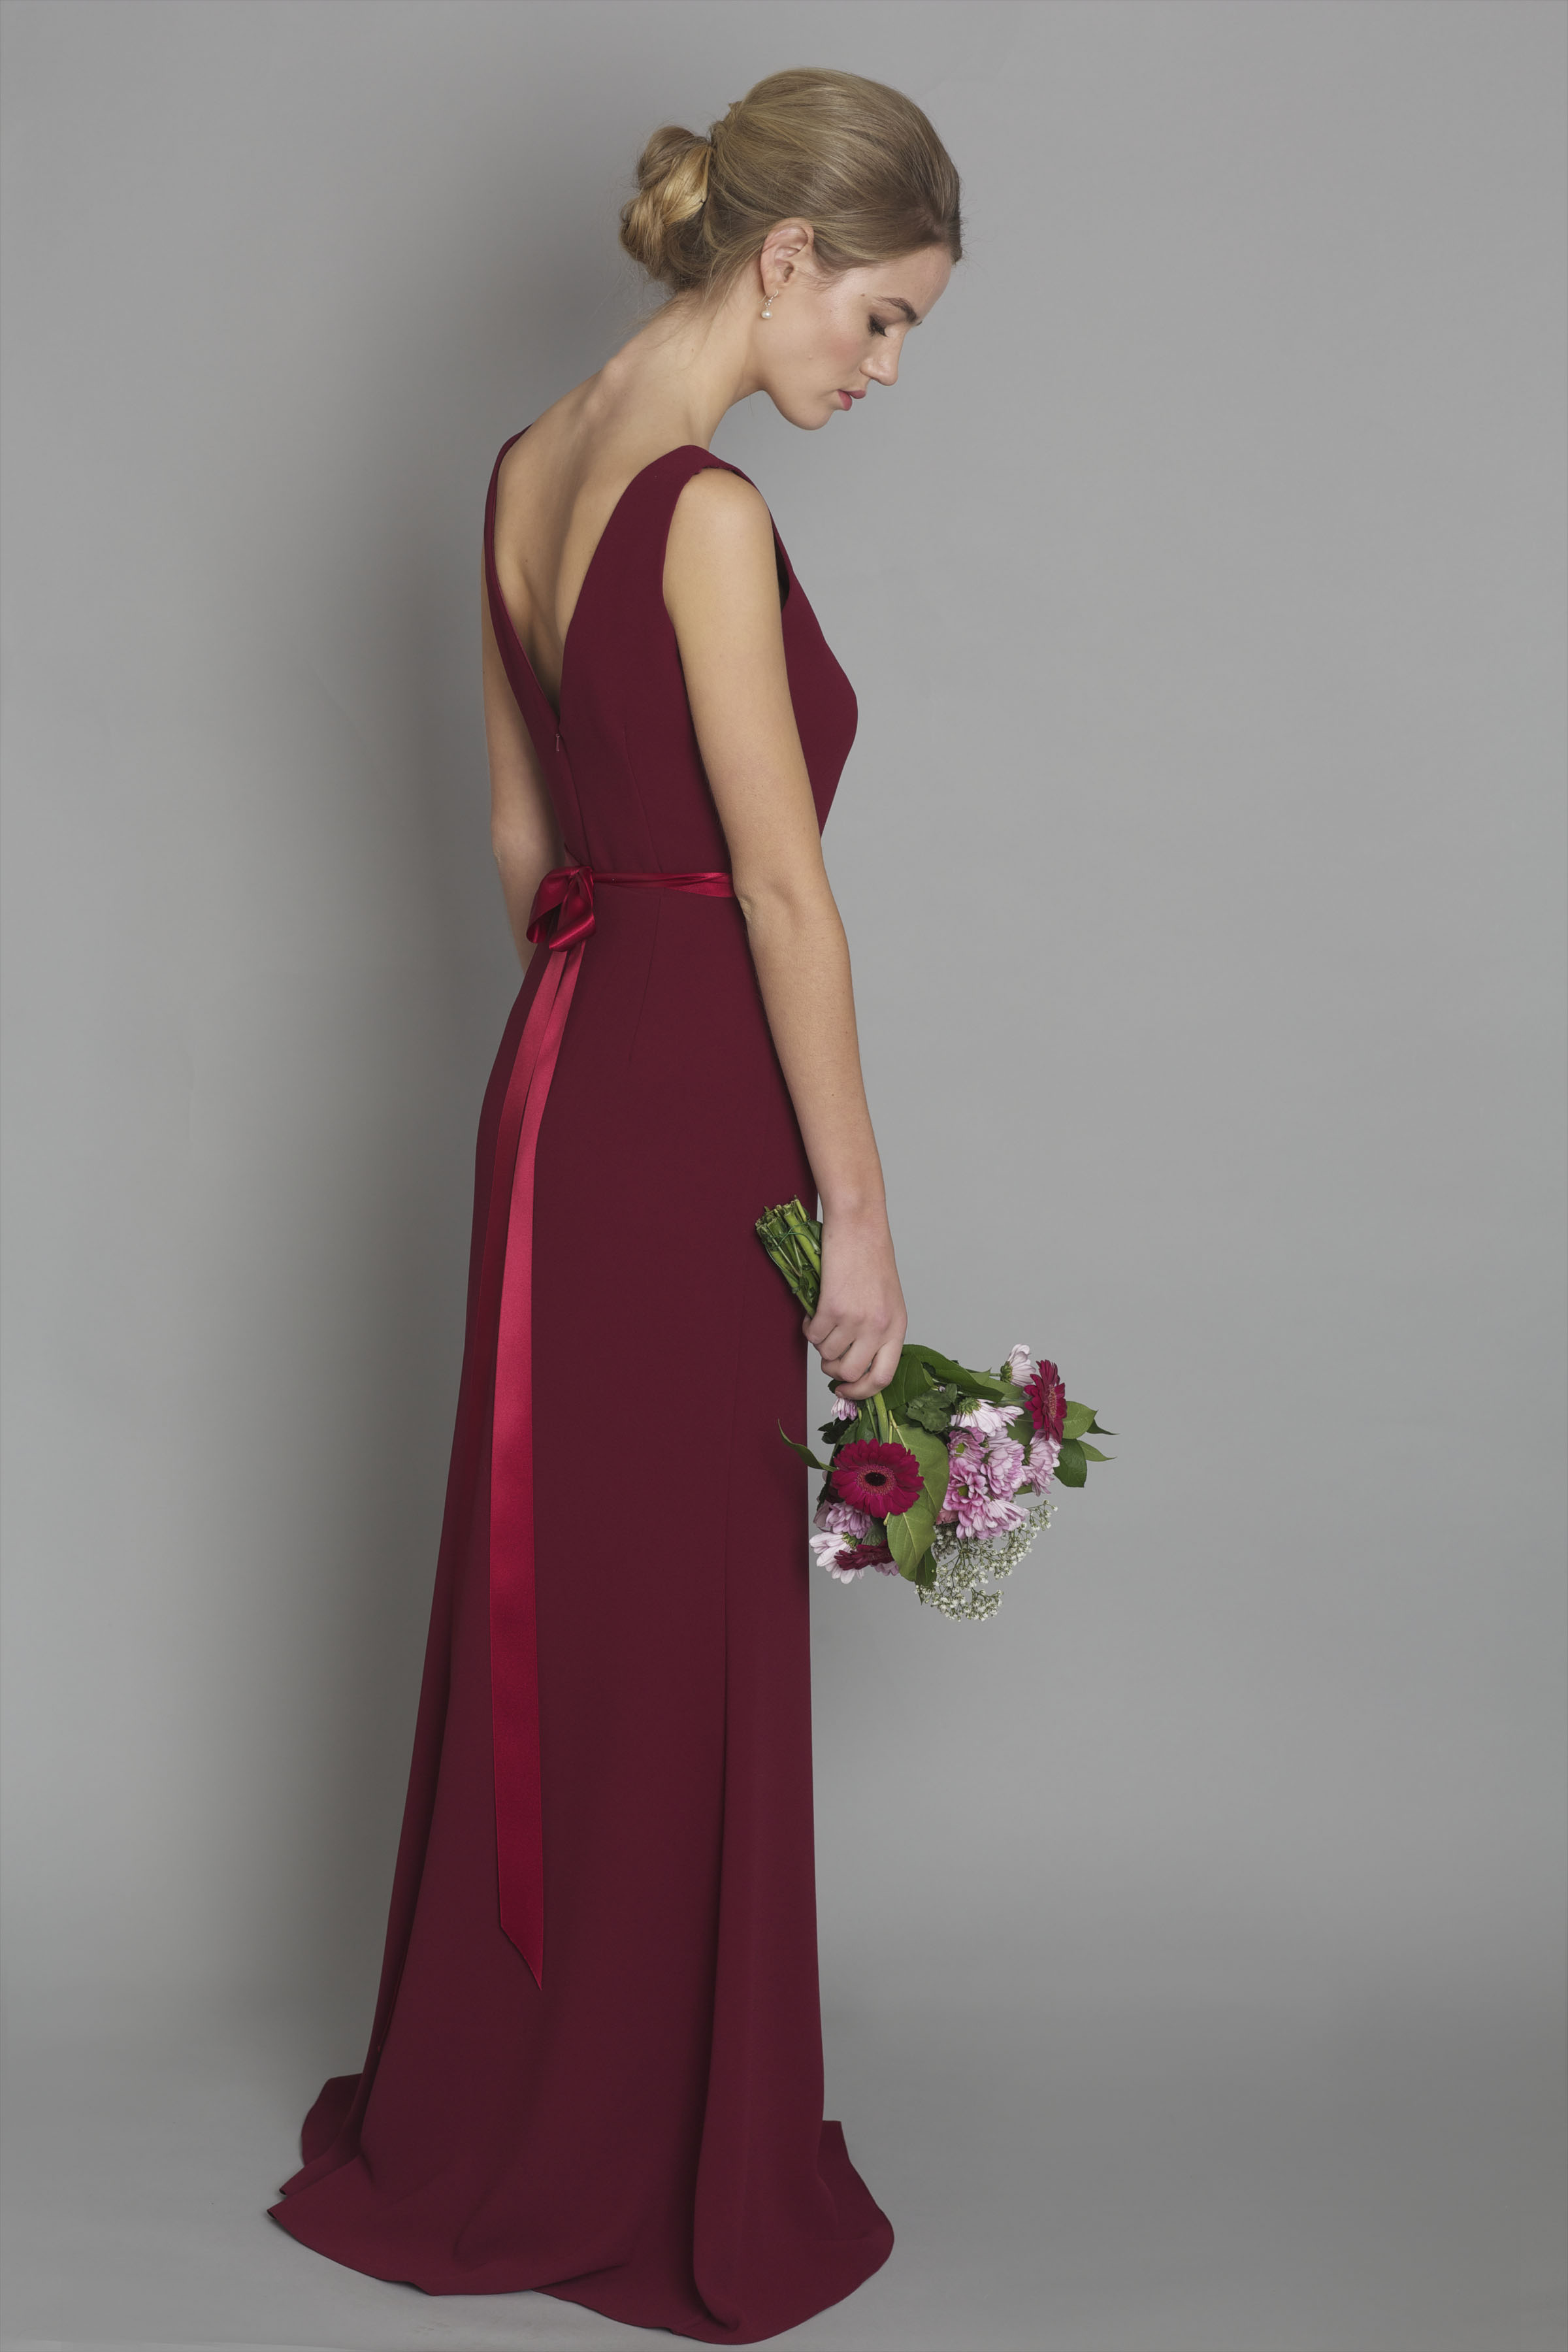 63f2c30828318 Mulberry DC1179 - Bridesmaid Evening   Debs Dresses from Dresscode